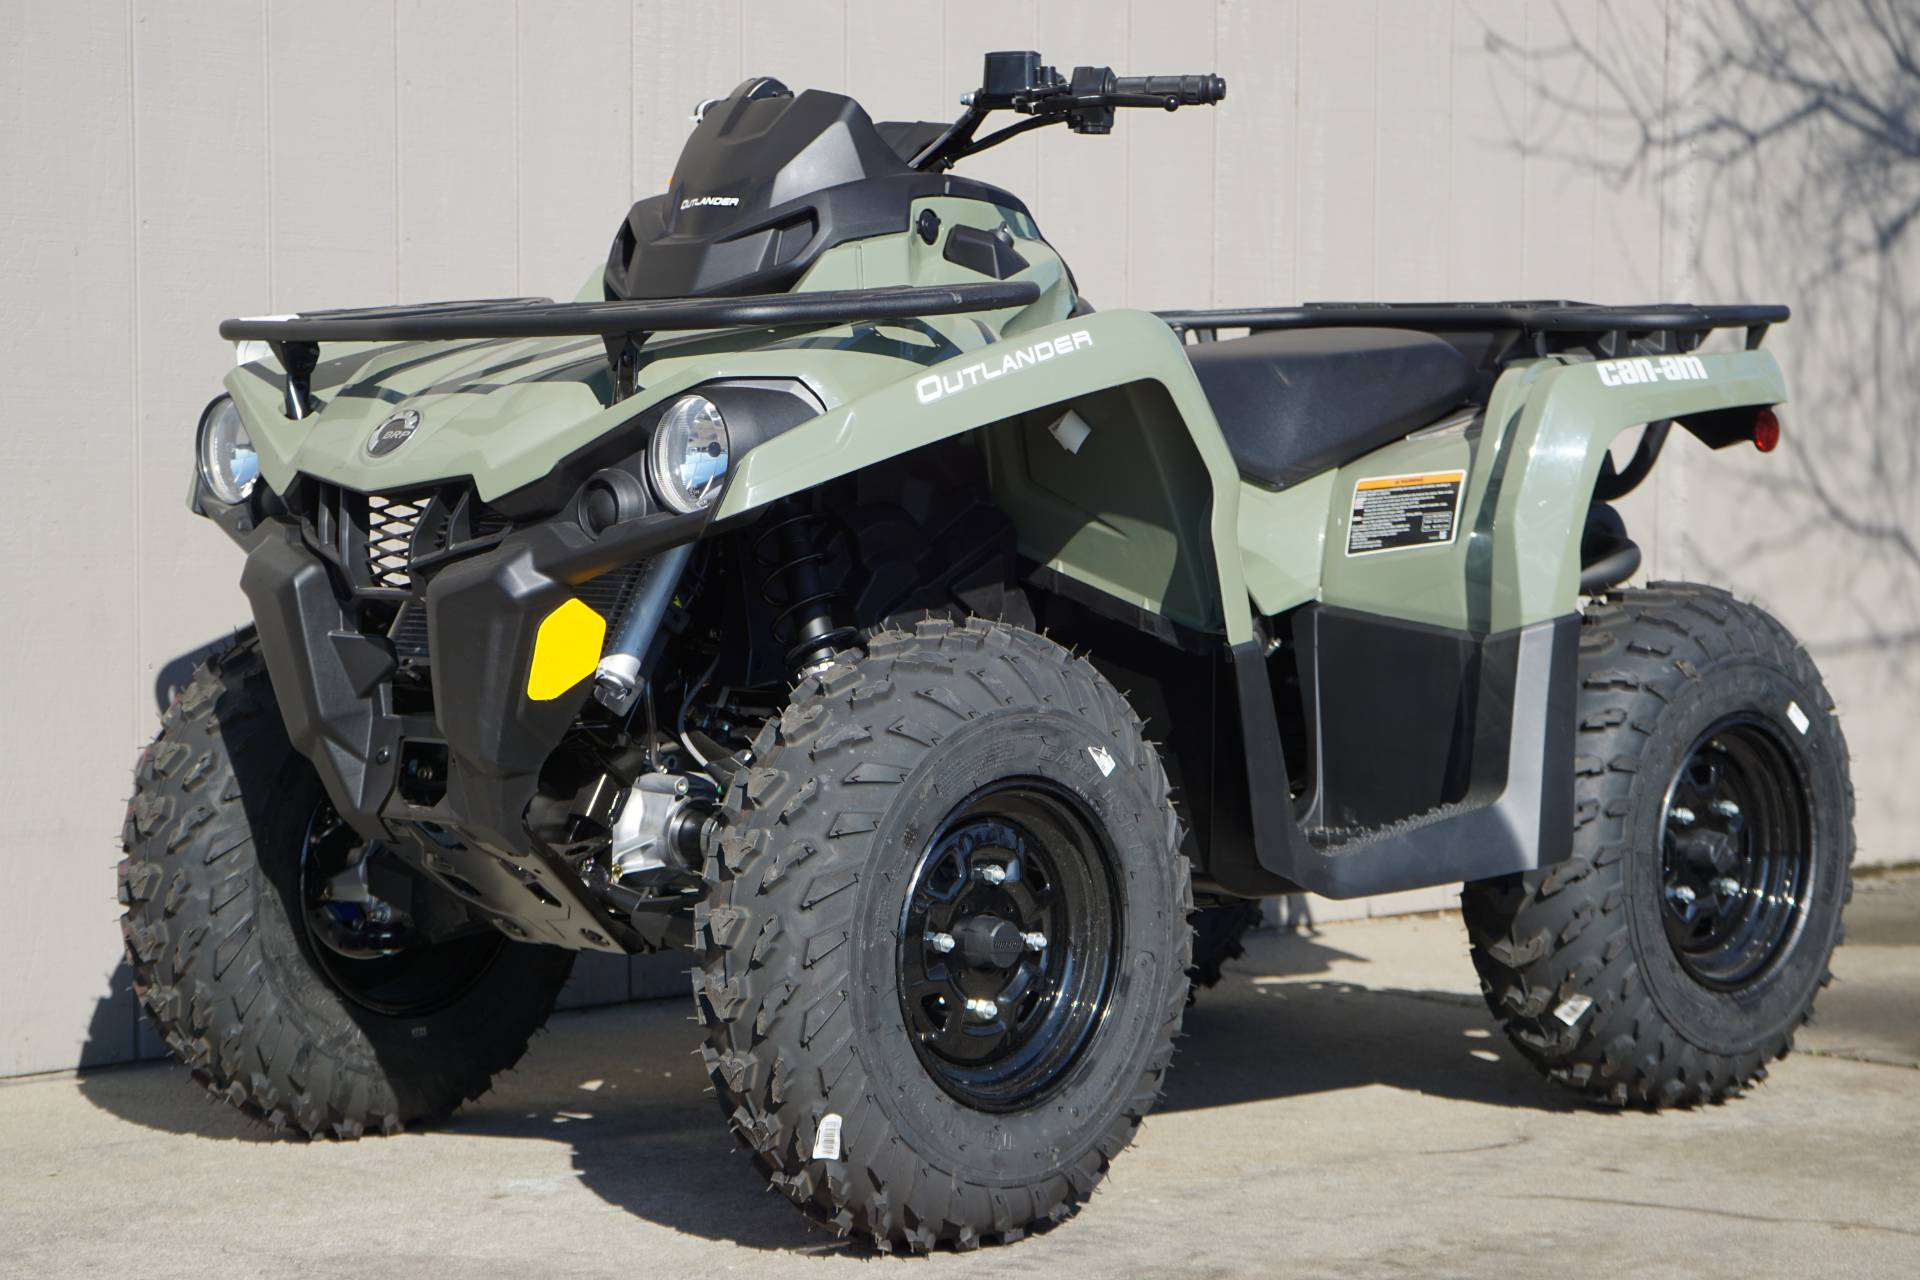 2019 Can-Am Outlander 450 for sale 151355